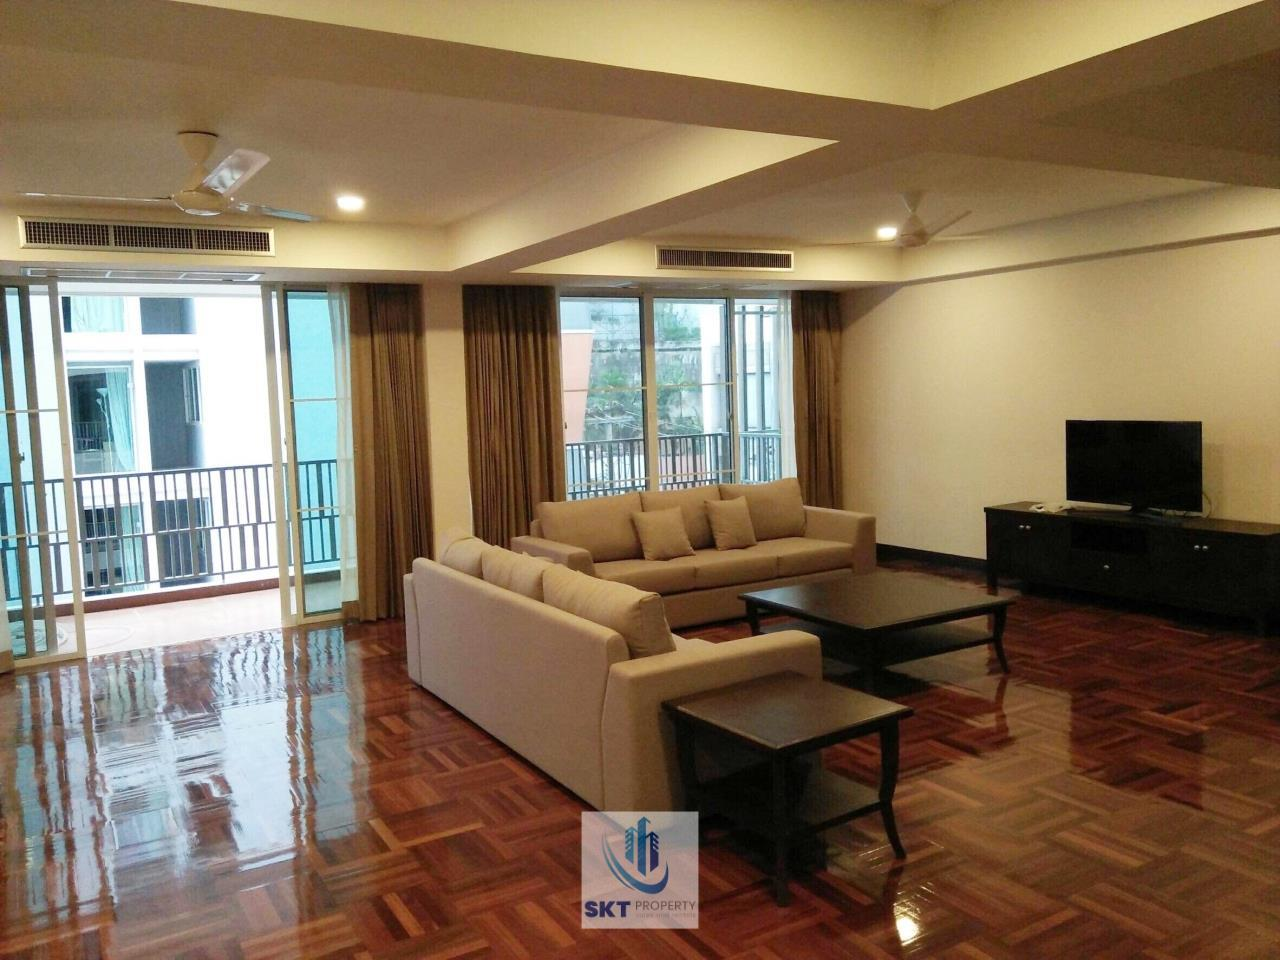 Sukritta Property Agency's For Rent PET FRIENDLY APARTMENT Villa Insaf Near Bts Nana 2